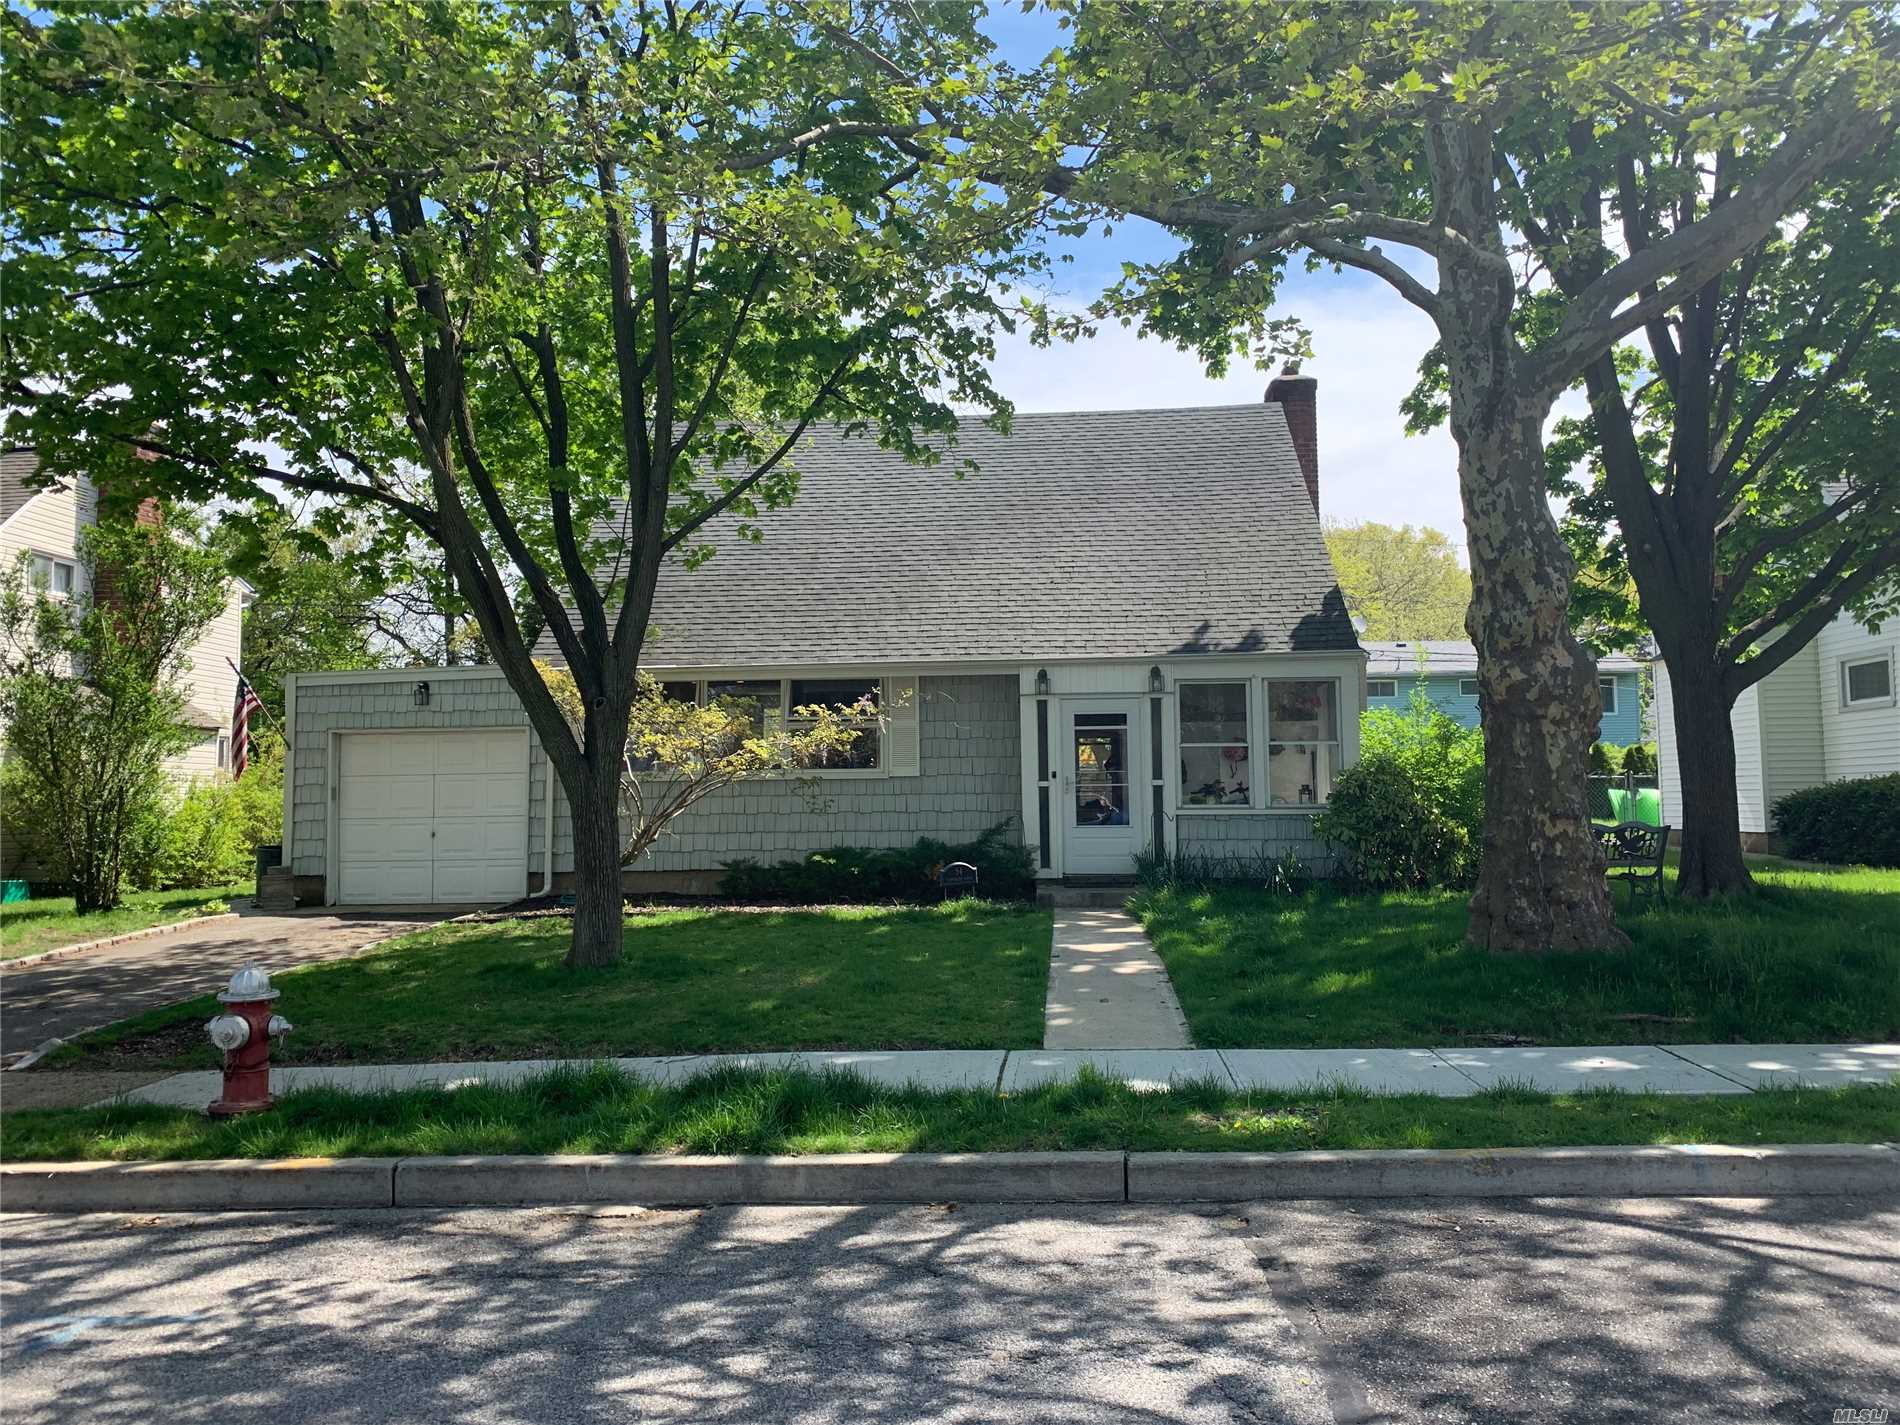 This 3 BR, 2 full bath cape situated on 60 x 100 has an updated kitchen with large island, first floor full bath with radiant heat. This as Is house is a great opportunity for first time buyer or scale down. Gas heat, private driveway, near to parks and school. Garden City Schools.